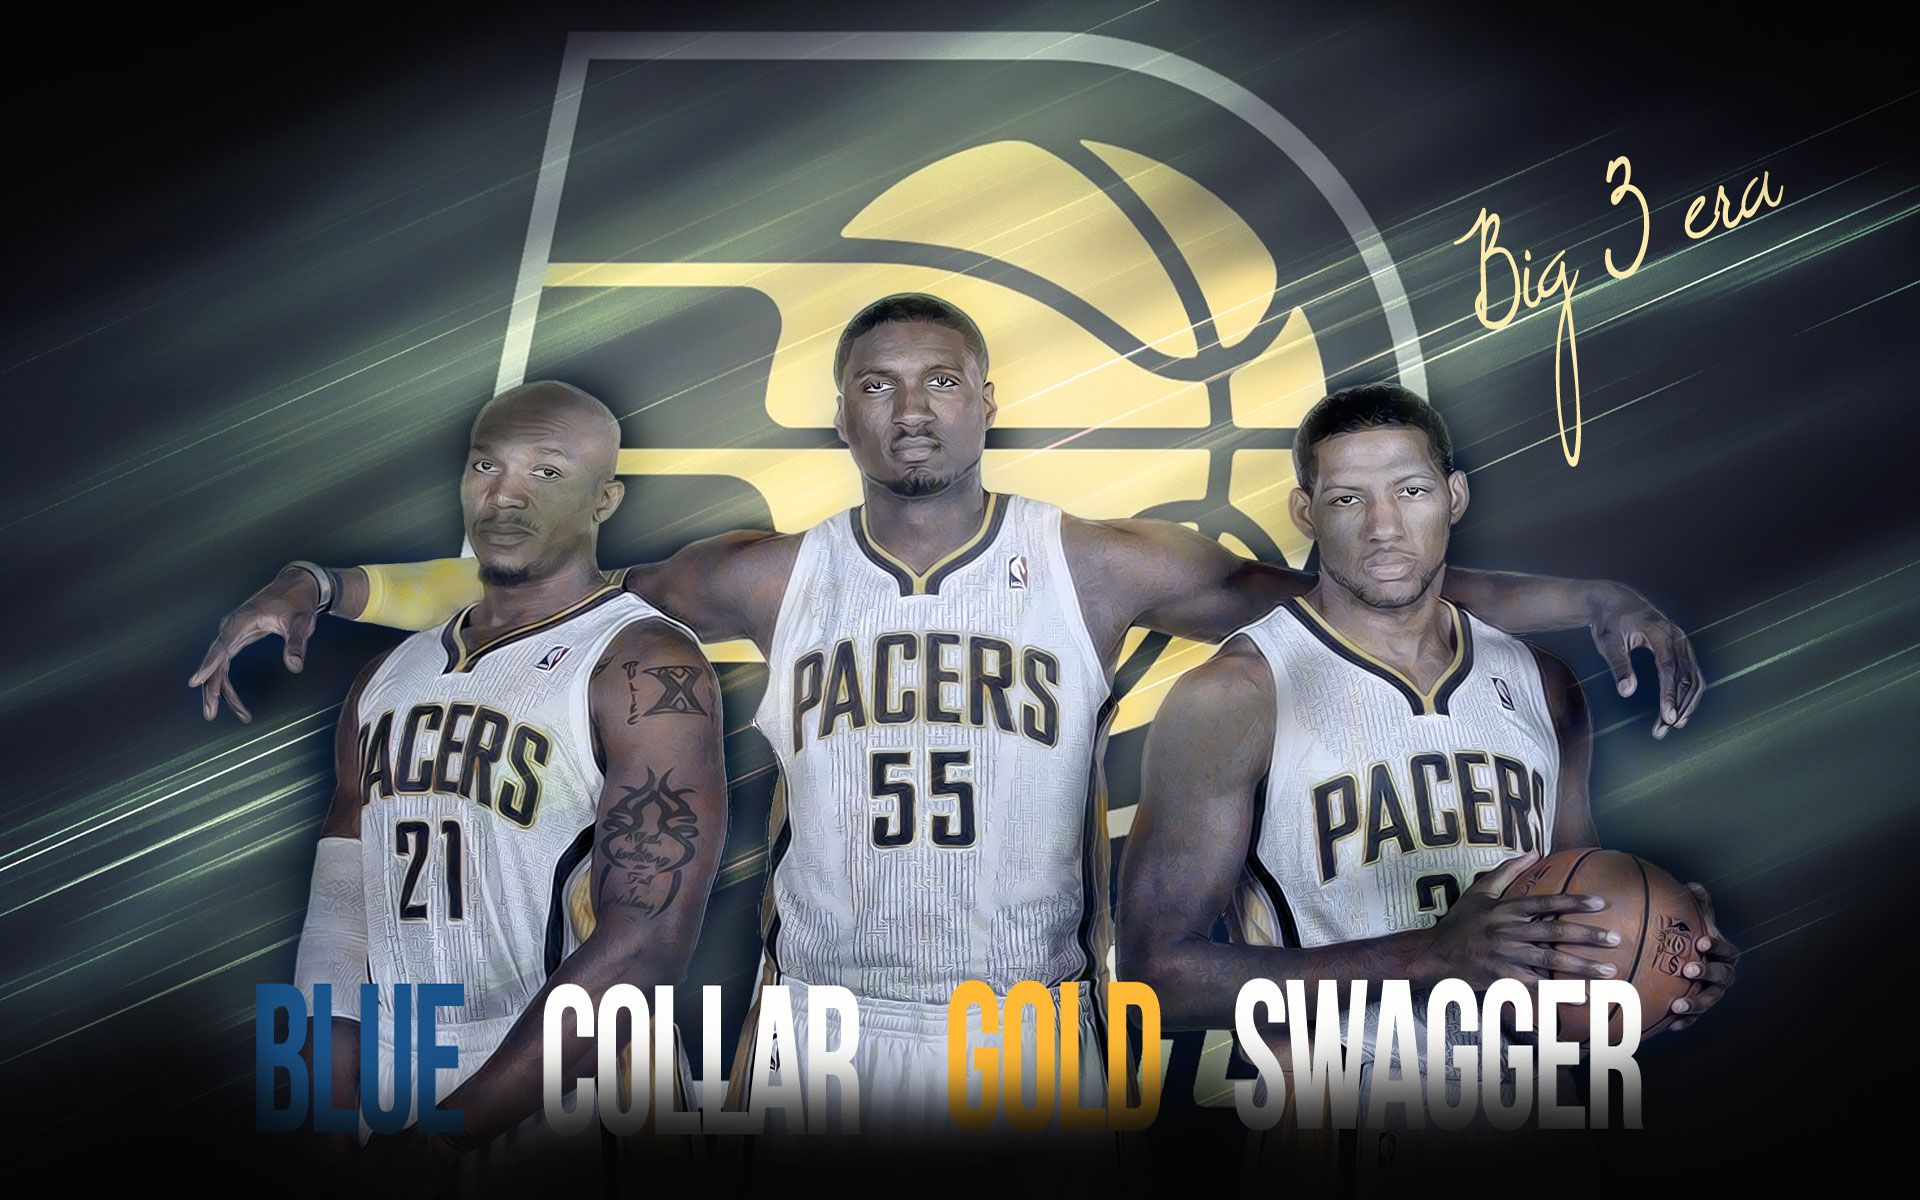 Indiana pacers blue collar gold swagger indiana pacers indiana pacers blue collar gold swagger nba updatesnba wallpapersindiana voltagebd Images